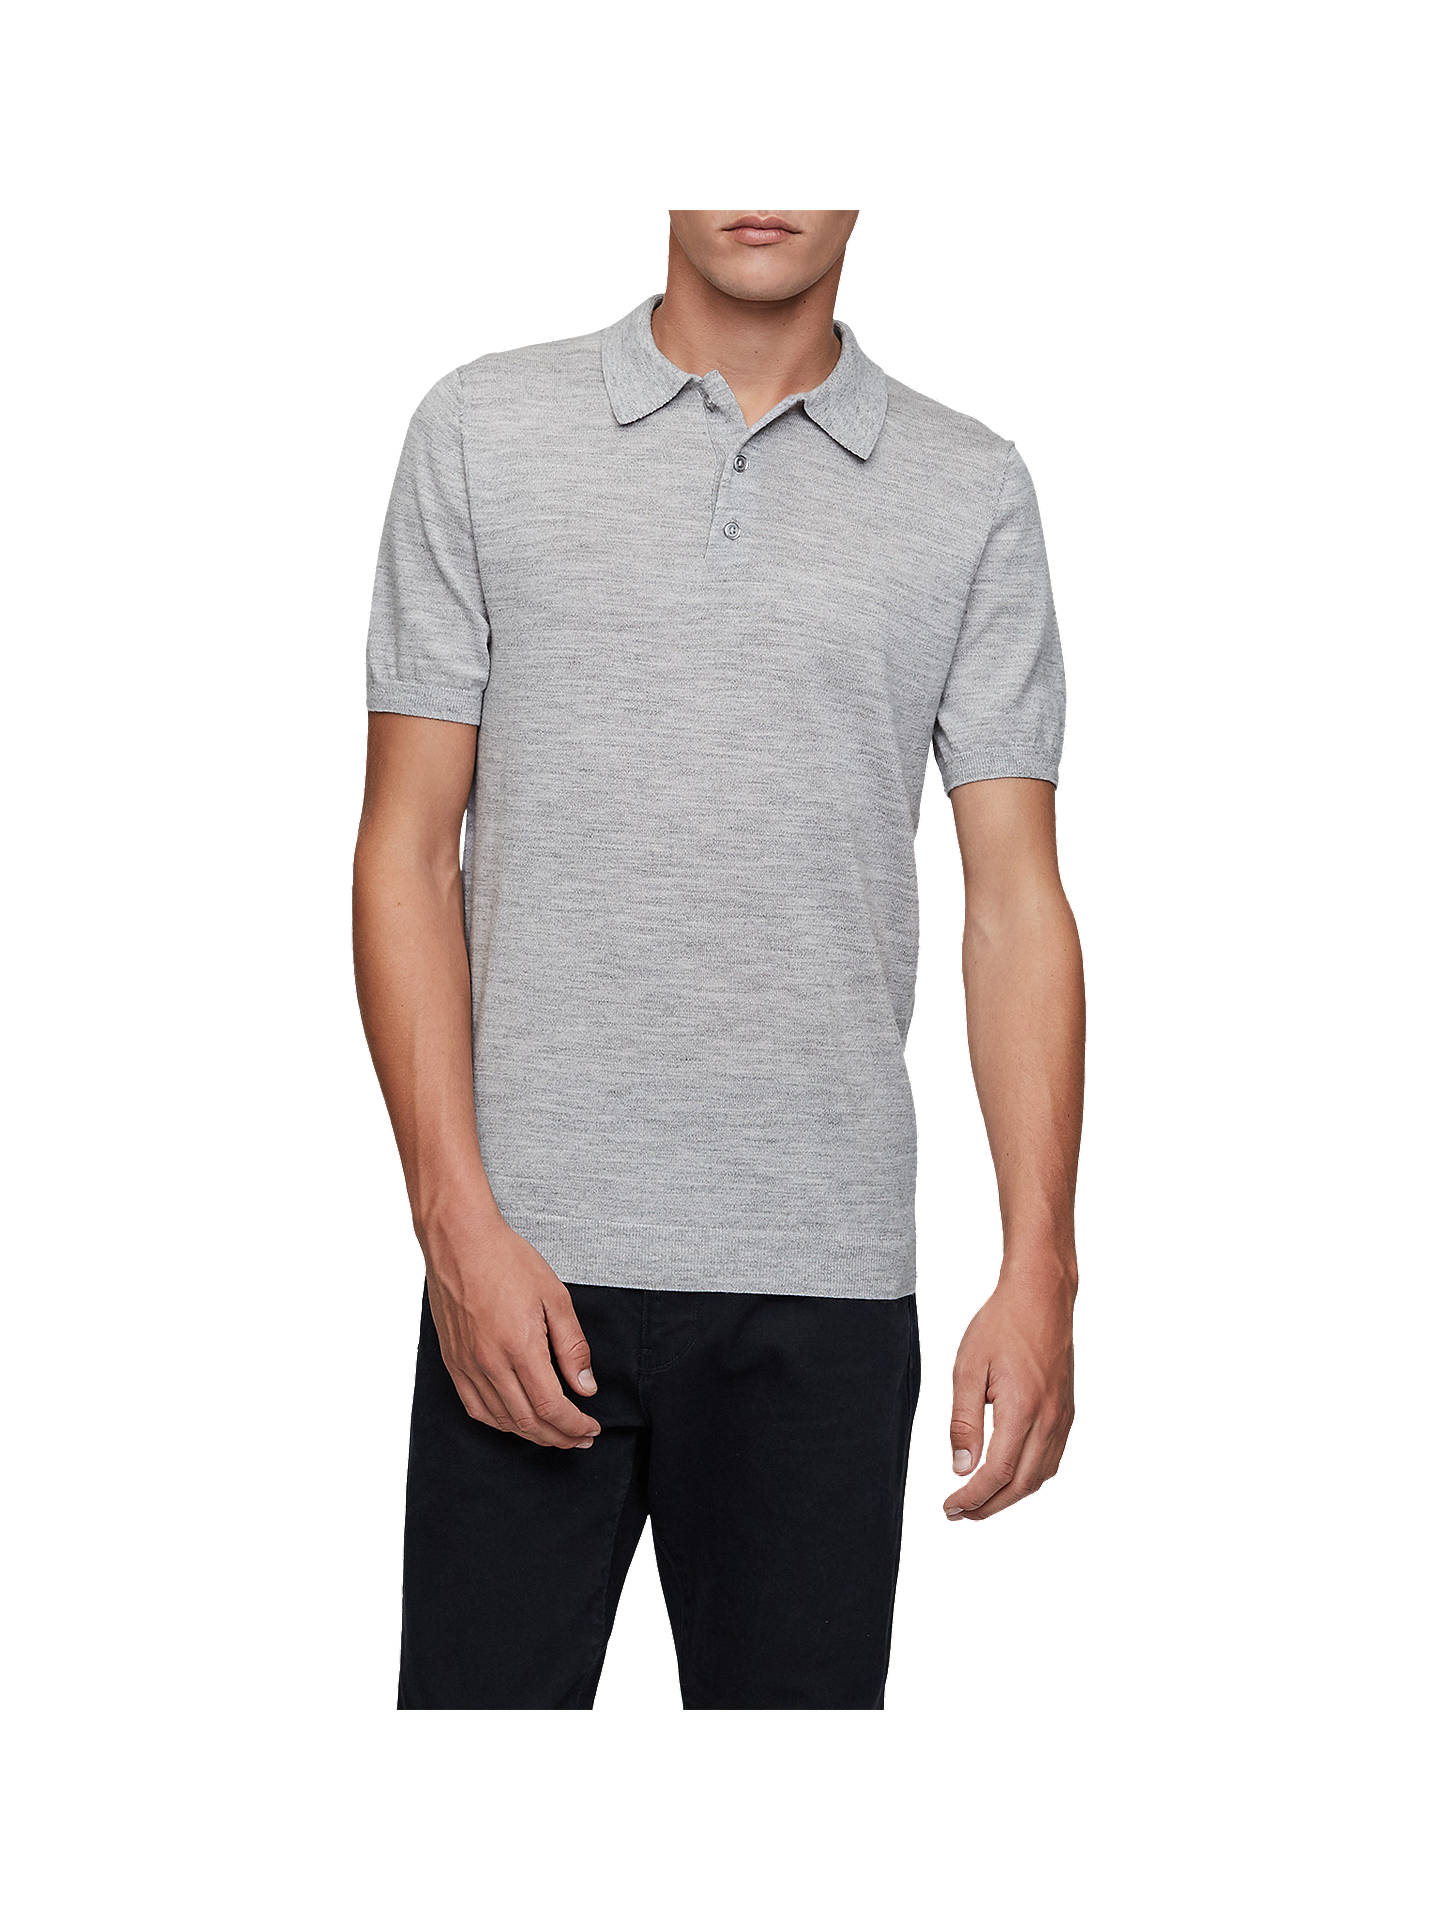 BuyReiss Manor Knit Polo Shirt, Grey, XS Online at johnlewis.com